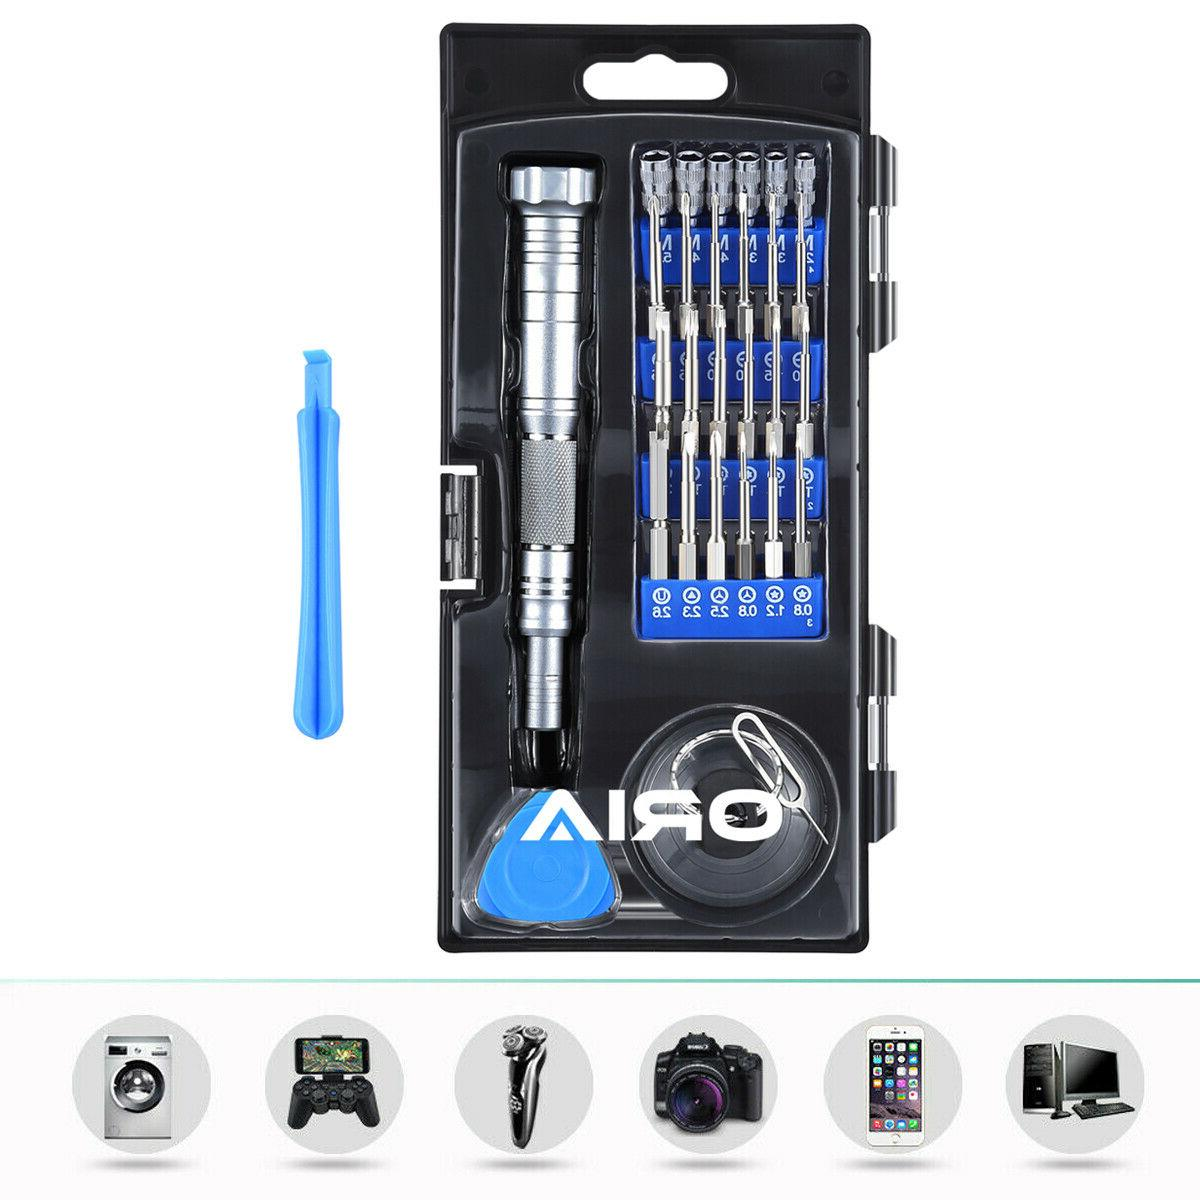 Xiaomi MiJia Multi-Tool Magnetic Screwdriver Set Repair Kit